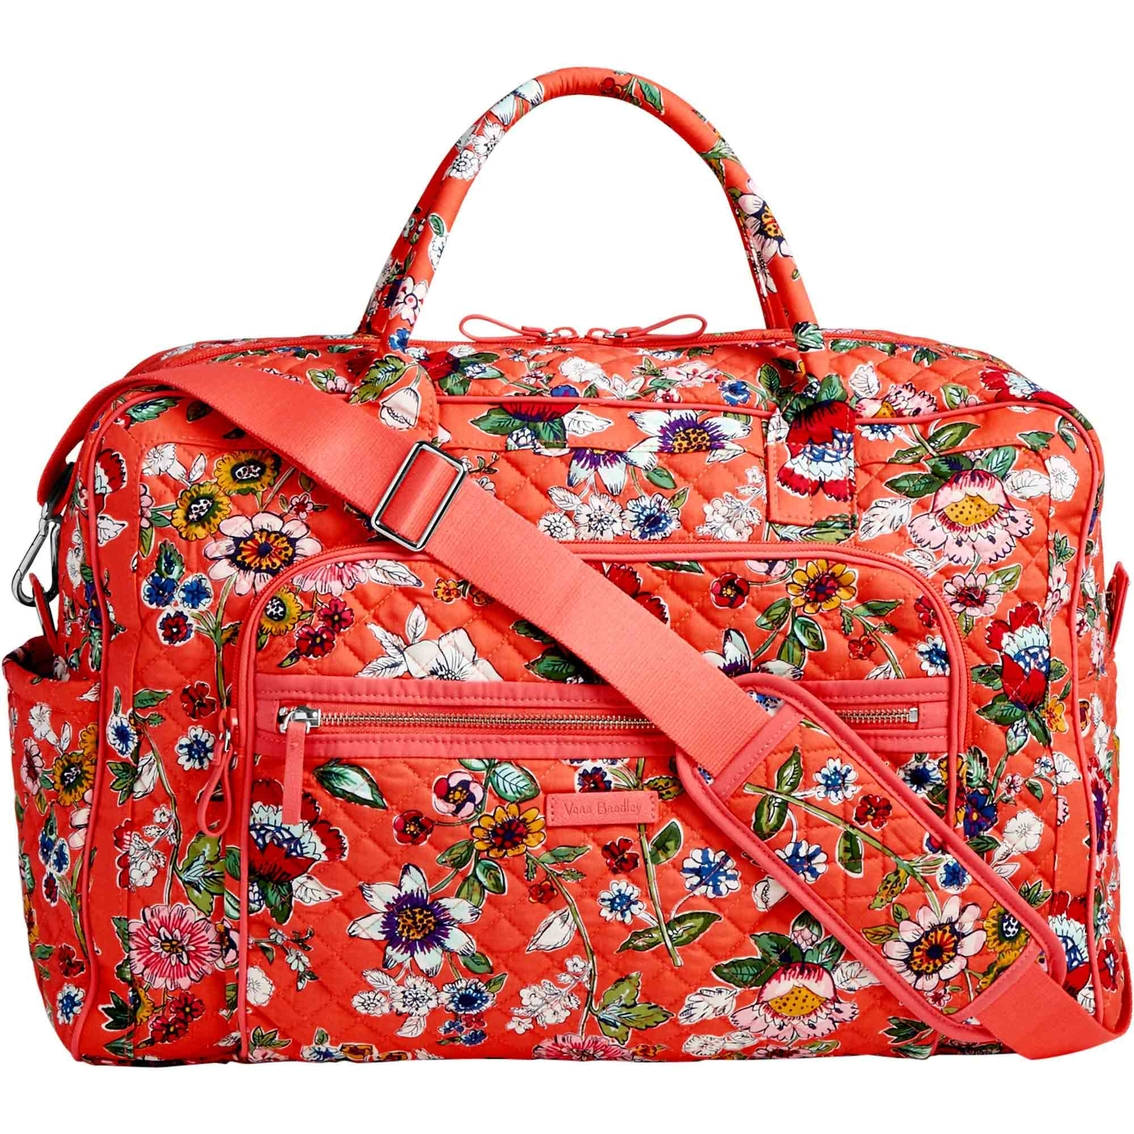 Vera Bradley Iconic Weekender Travel Bag (Coral Floral) Weekender/Overnight Luggage 6MkKU